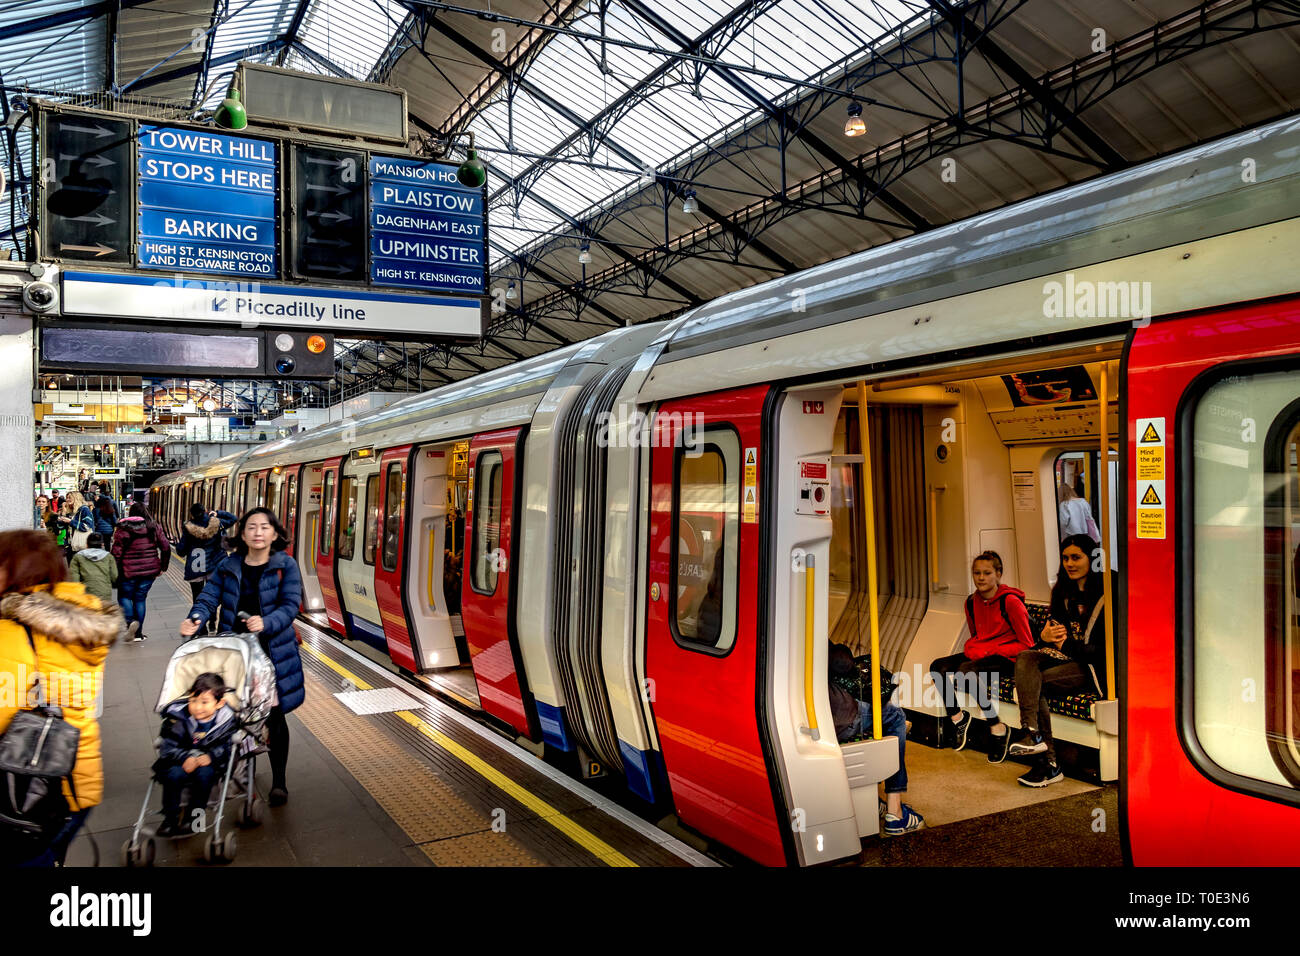 Two girls sitting on an S7 stock District Line train as a woman pushes a buggy on the platform at Earls's Court  Underground Station, London SW5 - Stock Image